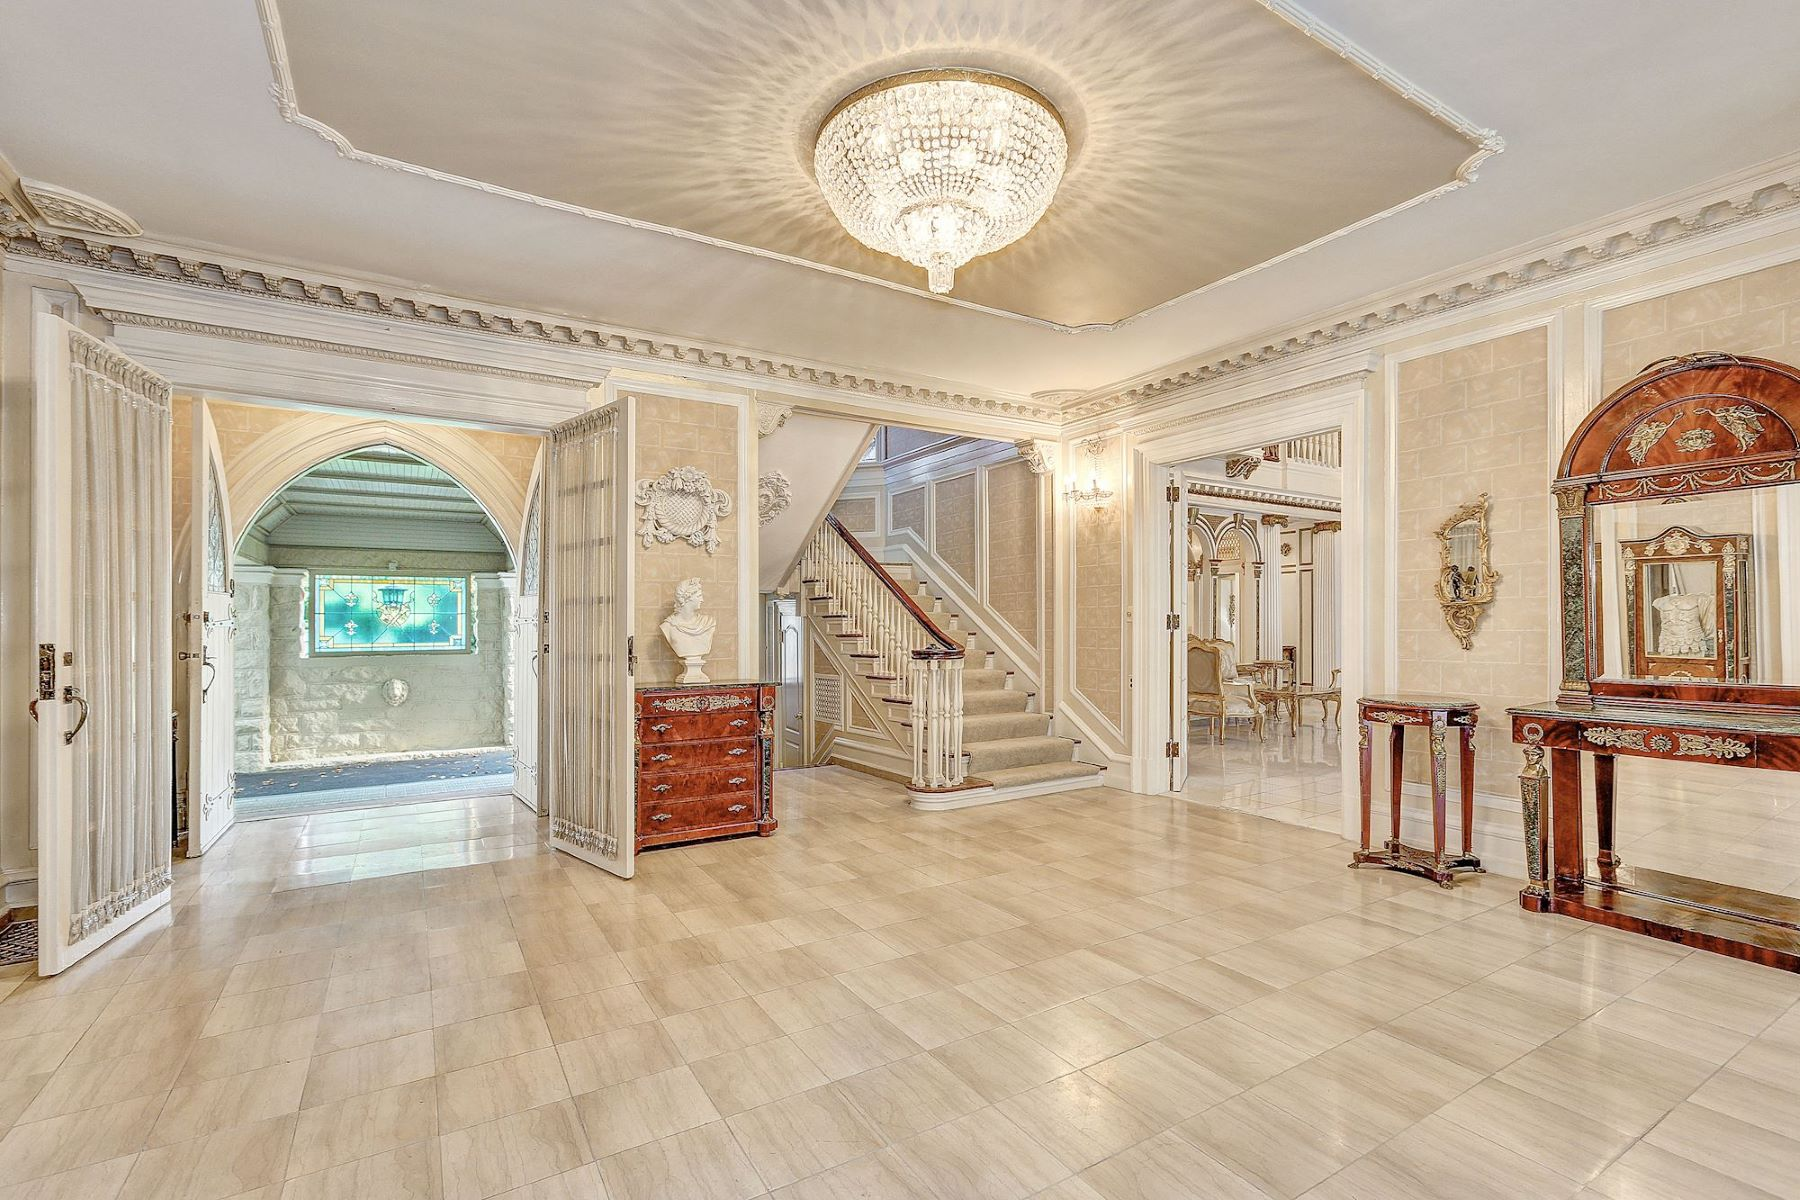 Additional photo for property listing at The Corby Mansion 9 Chevy Chase Circle Chevy Chase, Maryland 20815 United States